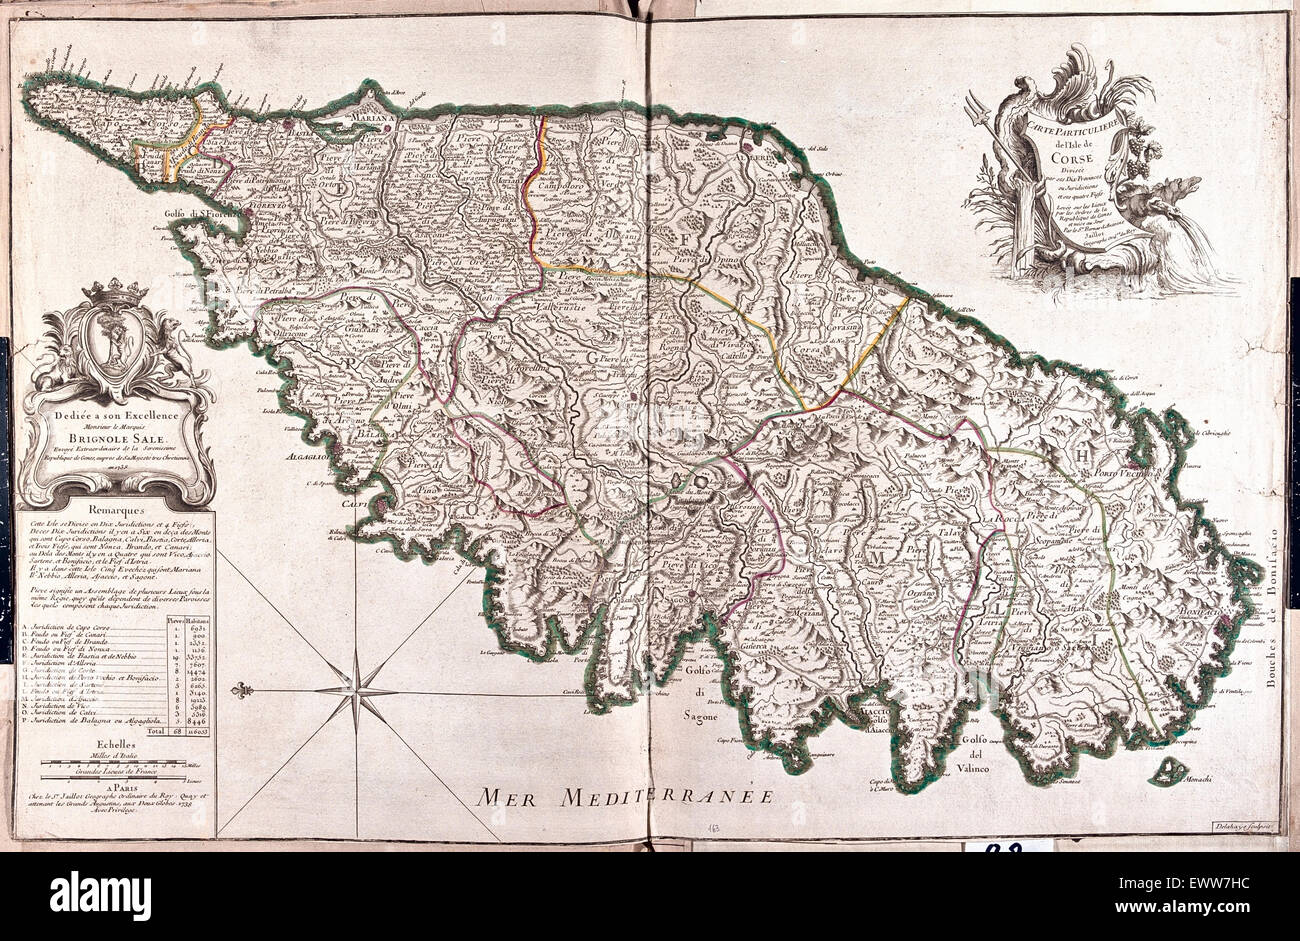 old map of Corsica, France - Stock Image